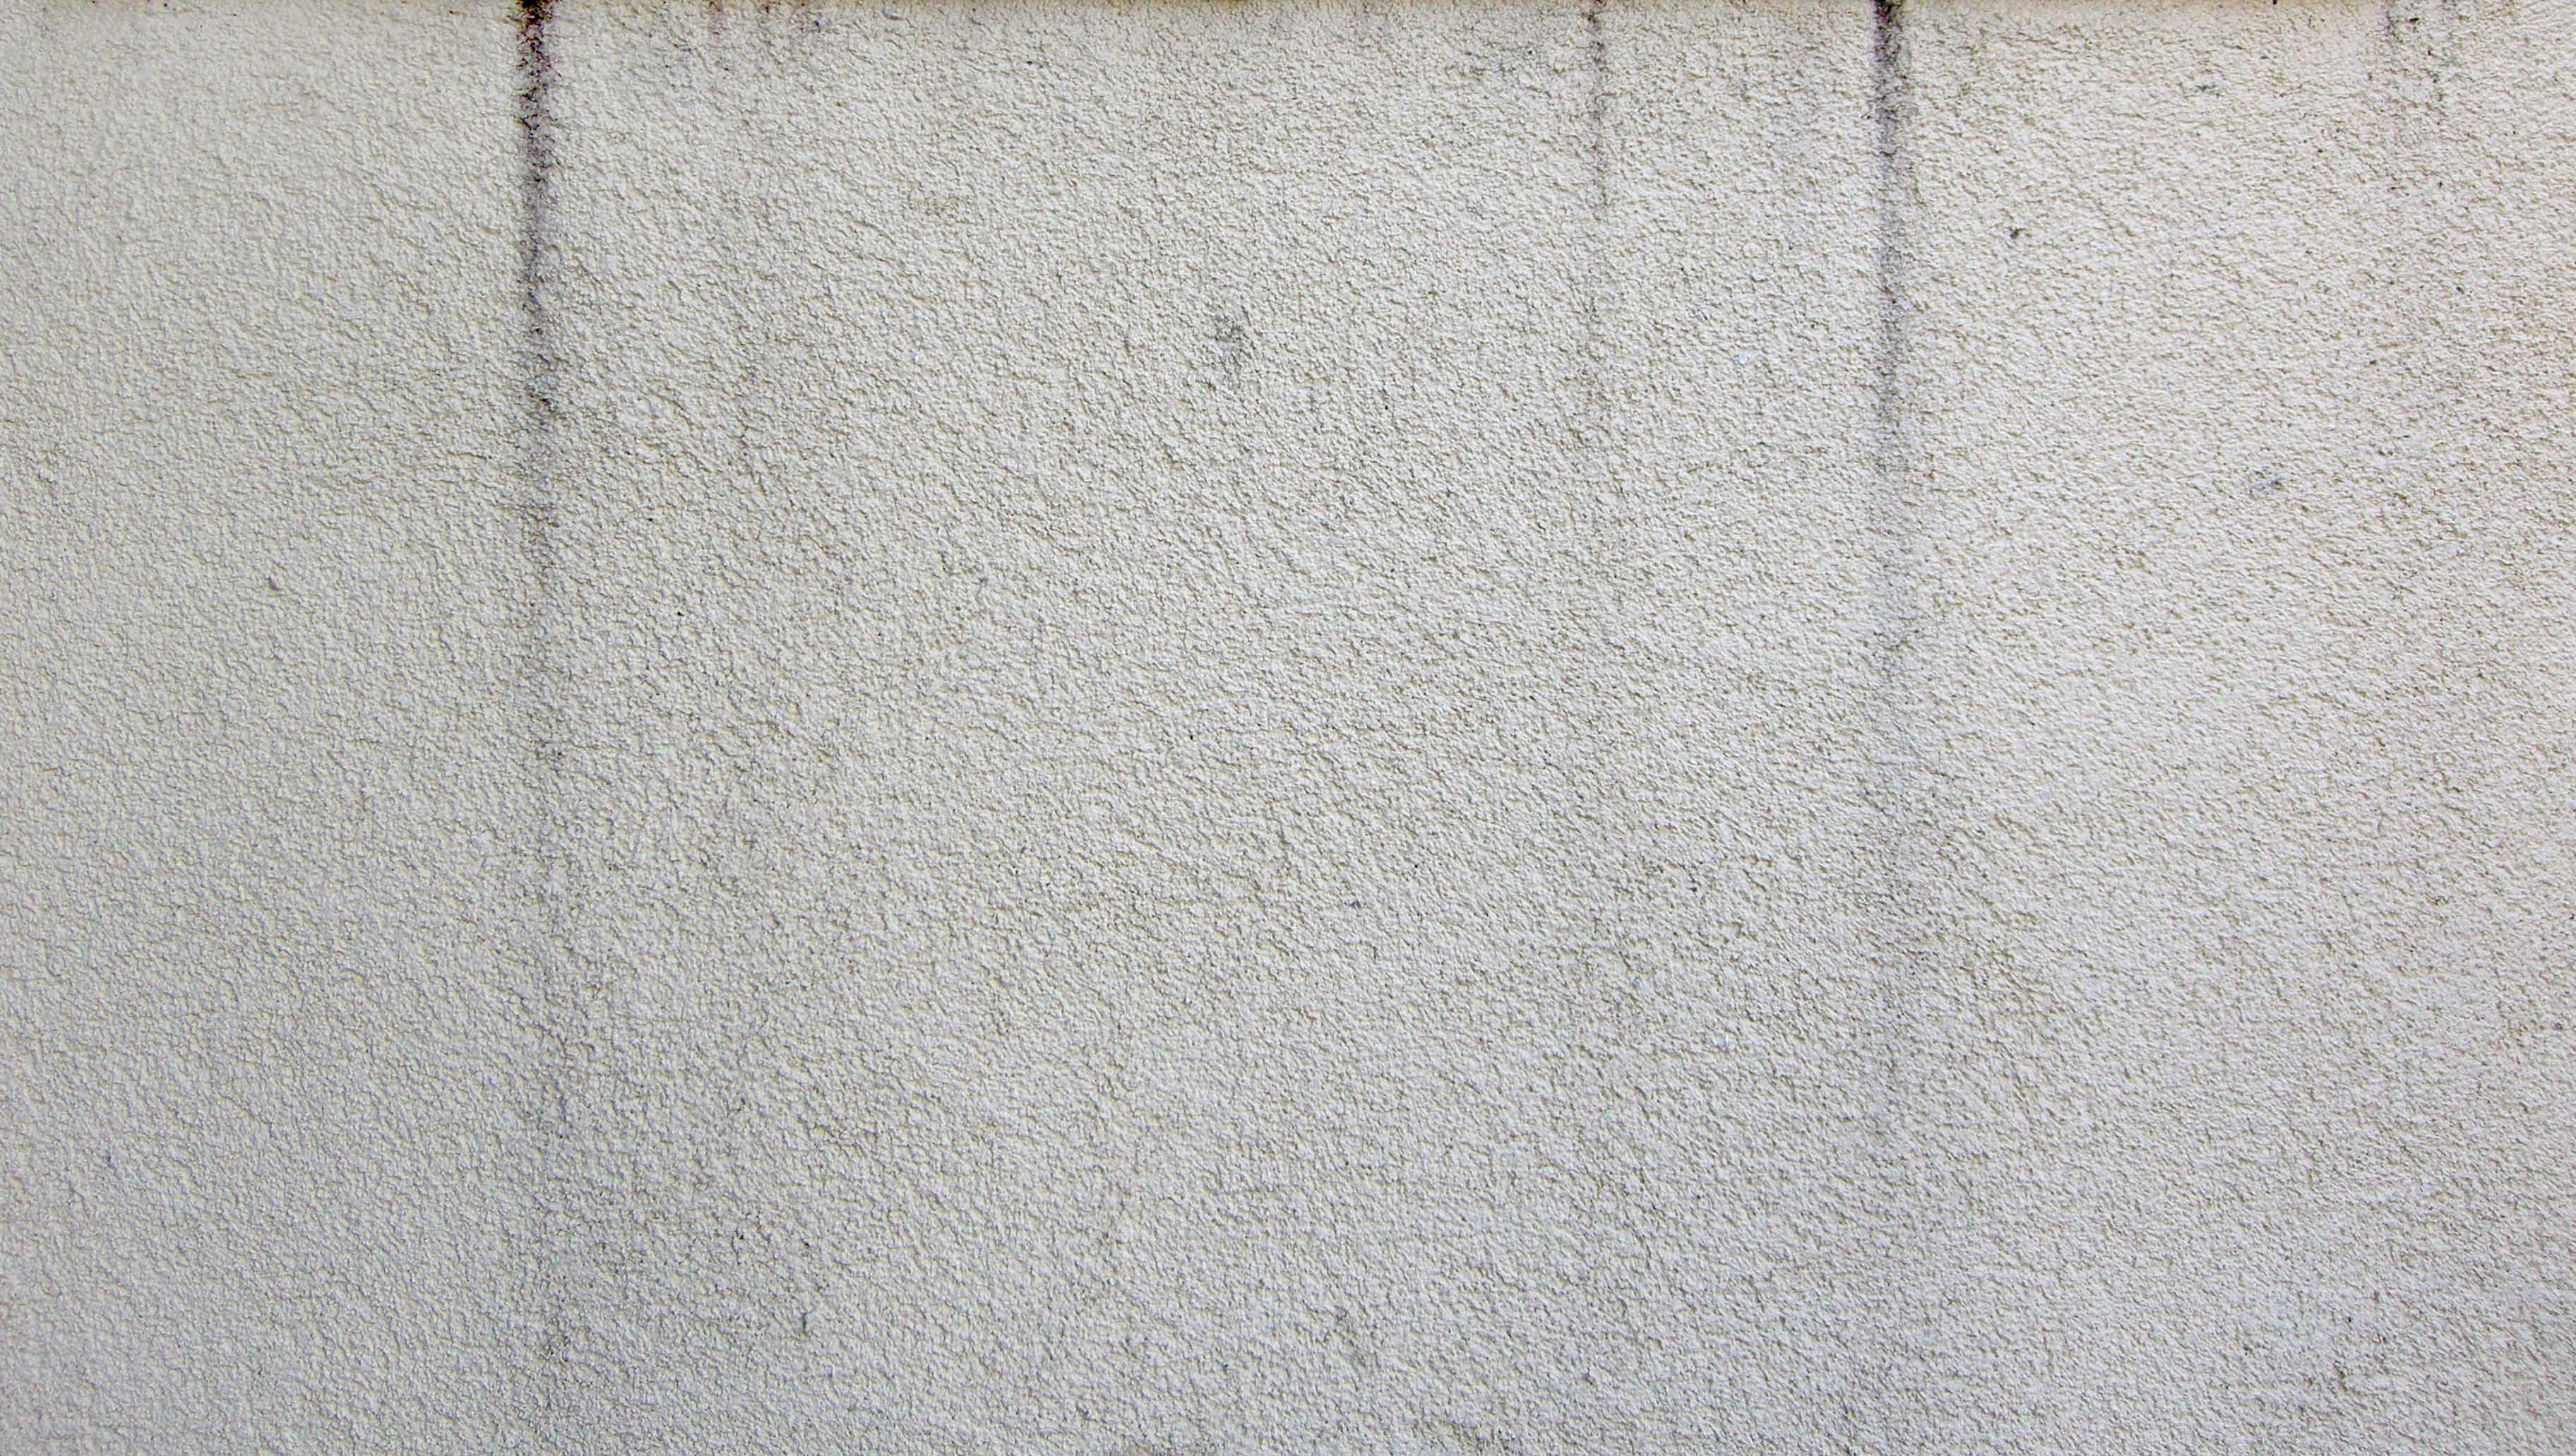 Cement wall texture photo